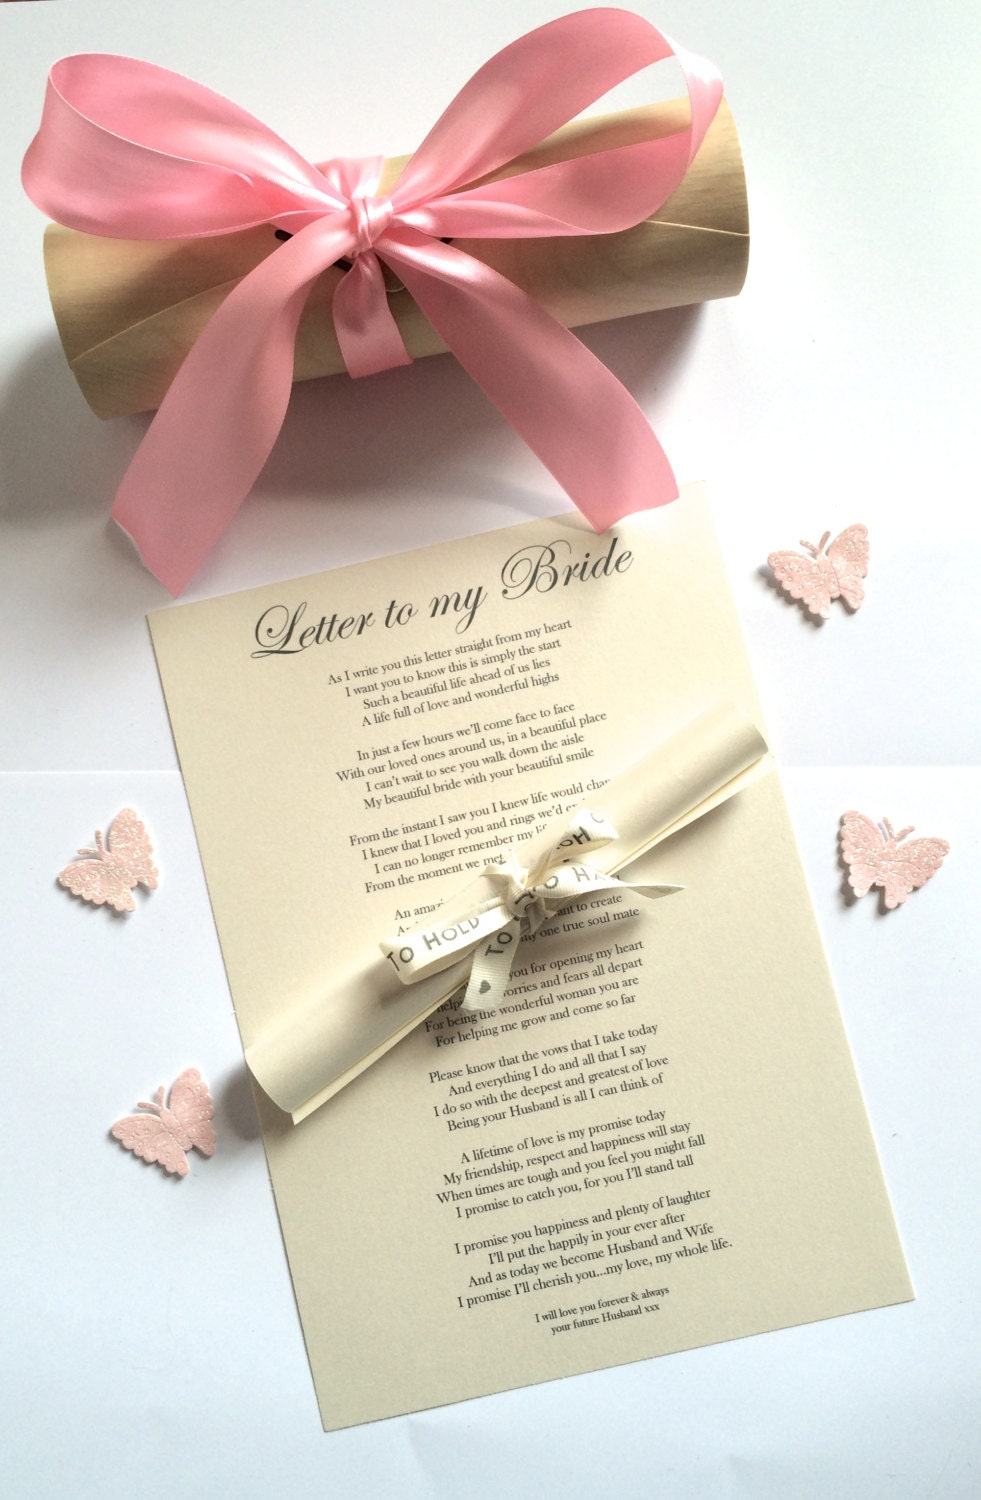 Wedding Gift for Bride from Groom on Wedding Day Personalised